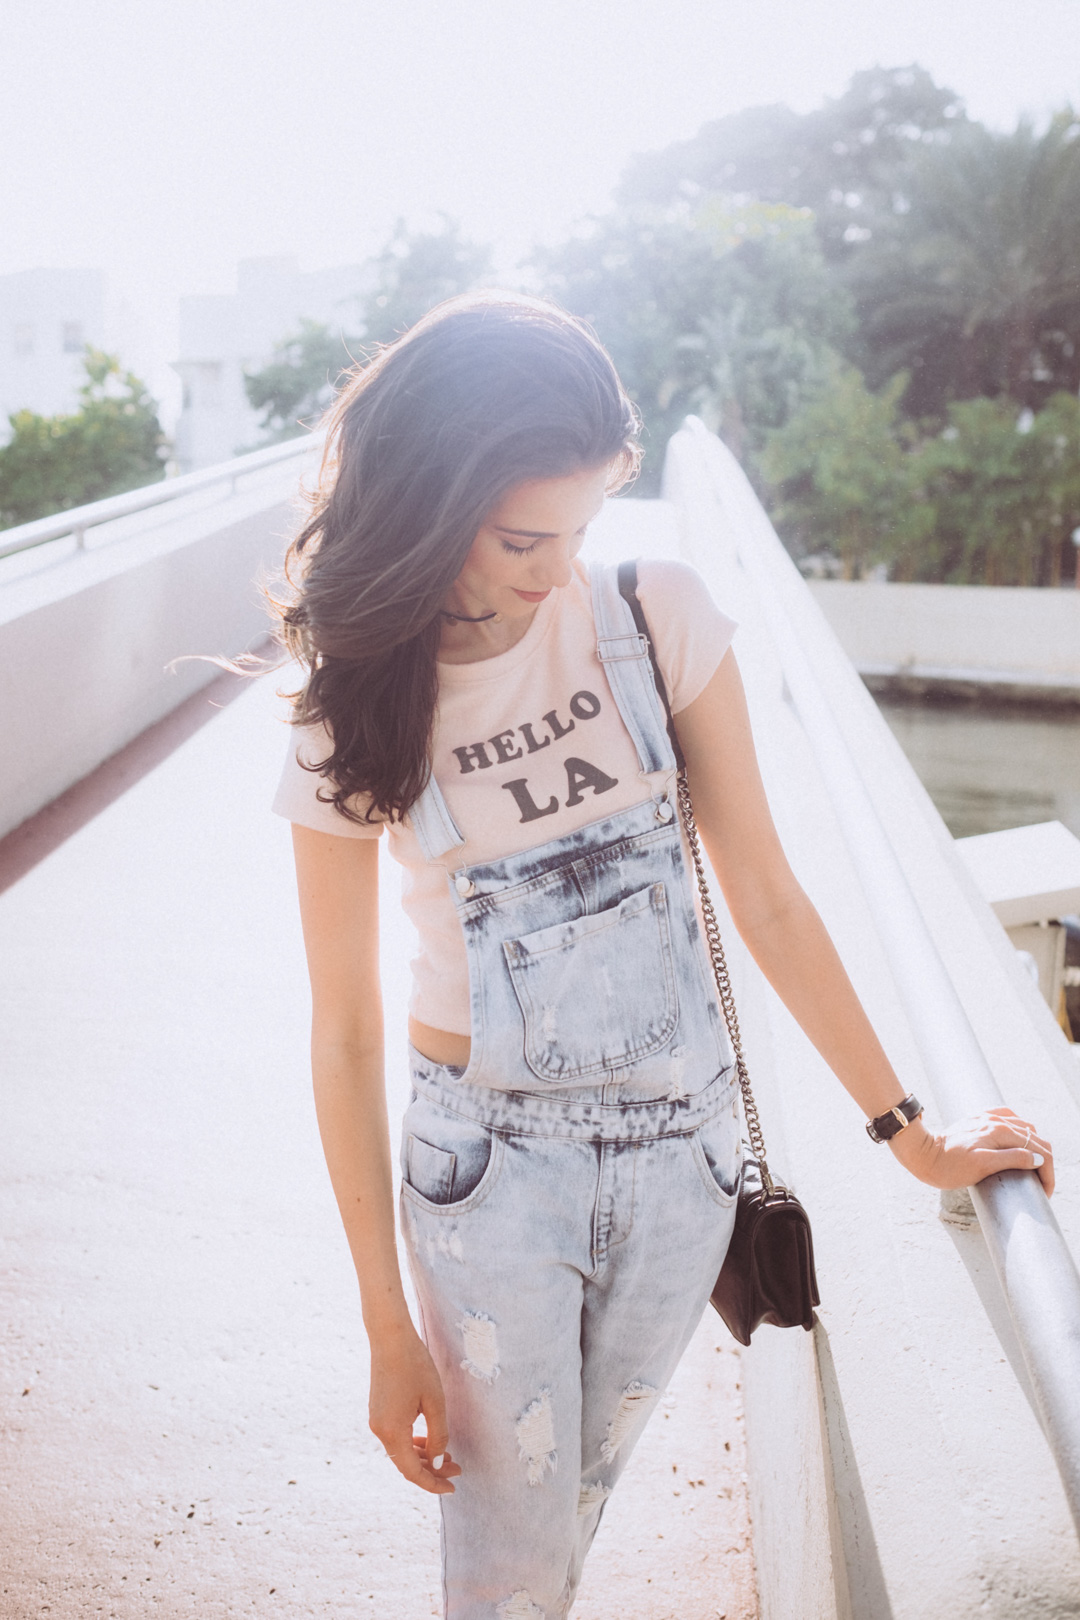 Dash of panache wearing Forever 21 Overalls and Hello LA Tee